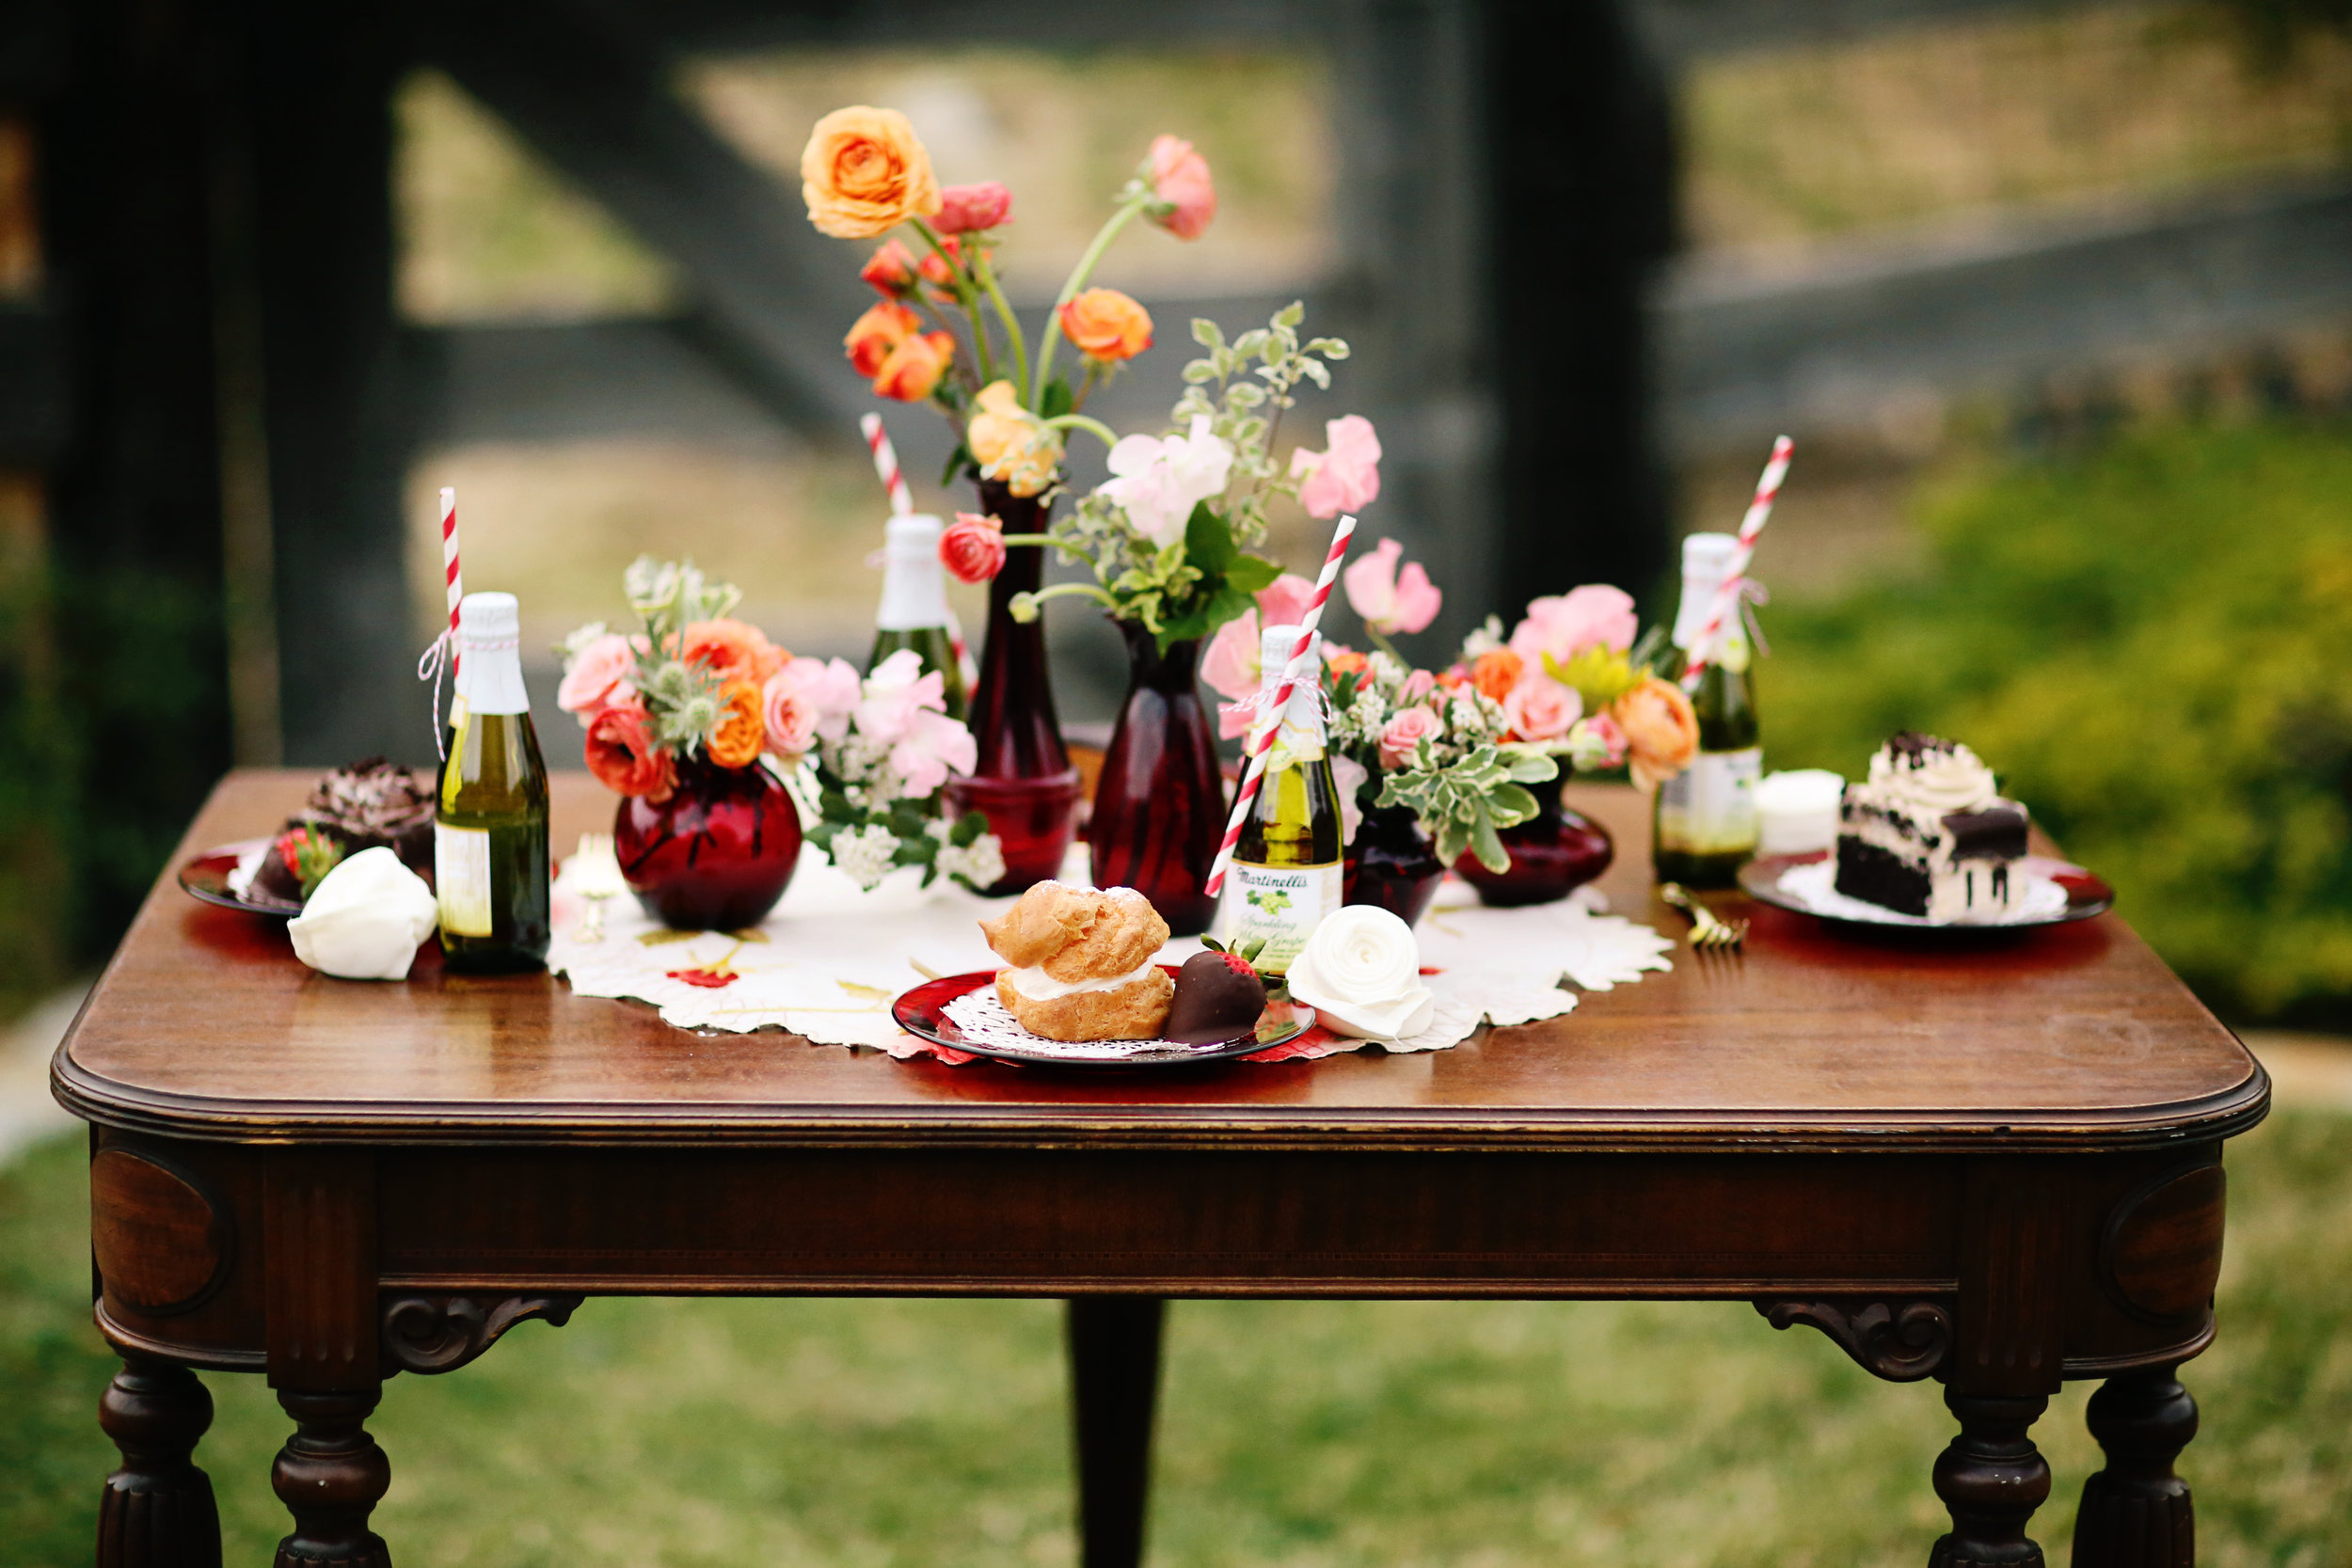 Vintage rental furniture for weddings and events in the Temecula Valley.